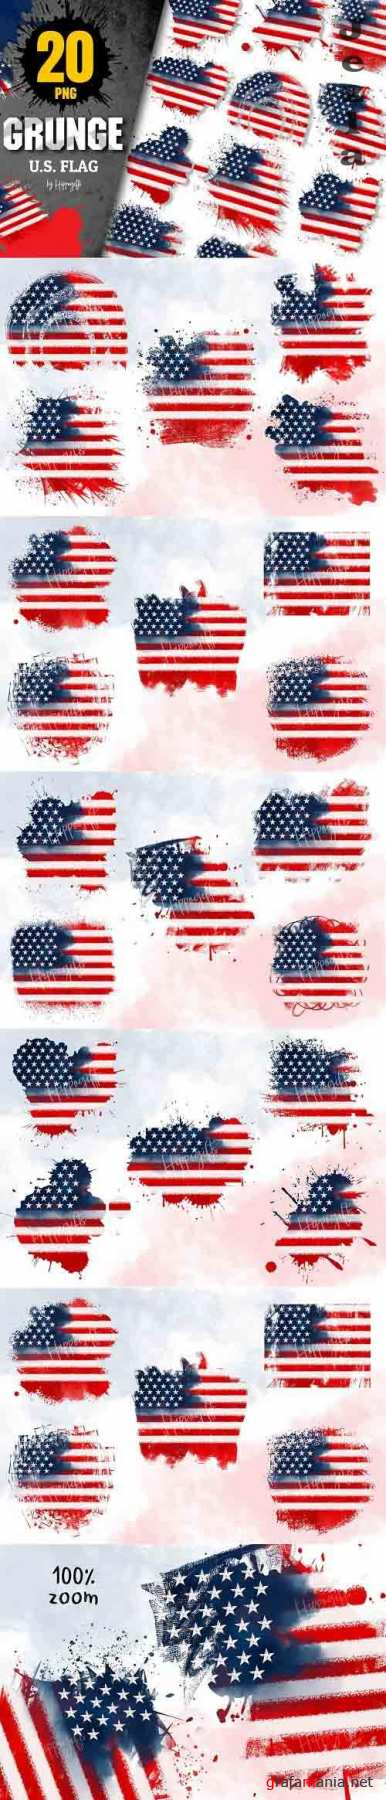 4th of July US Flag grunge clip art - 6147396